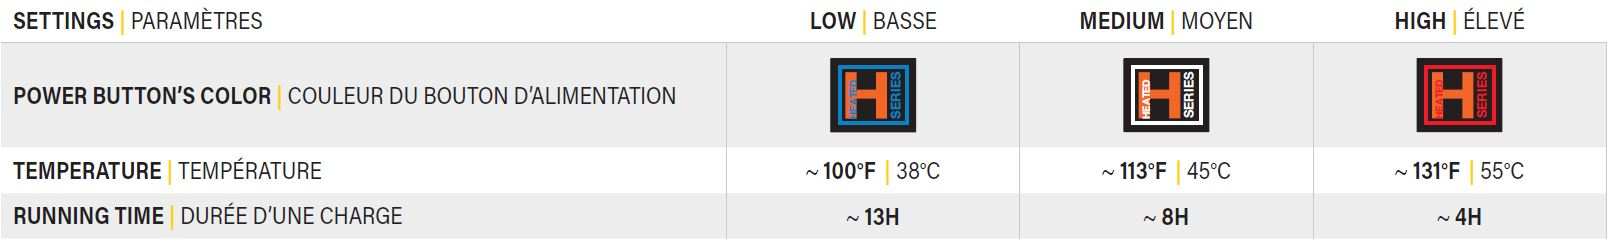 Table showing battery runtime on different heating settings for hoodies